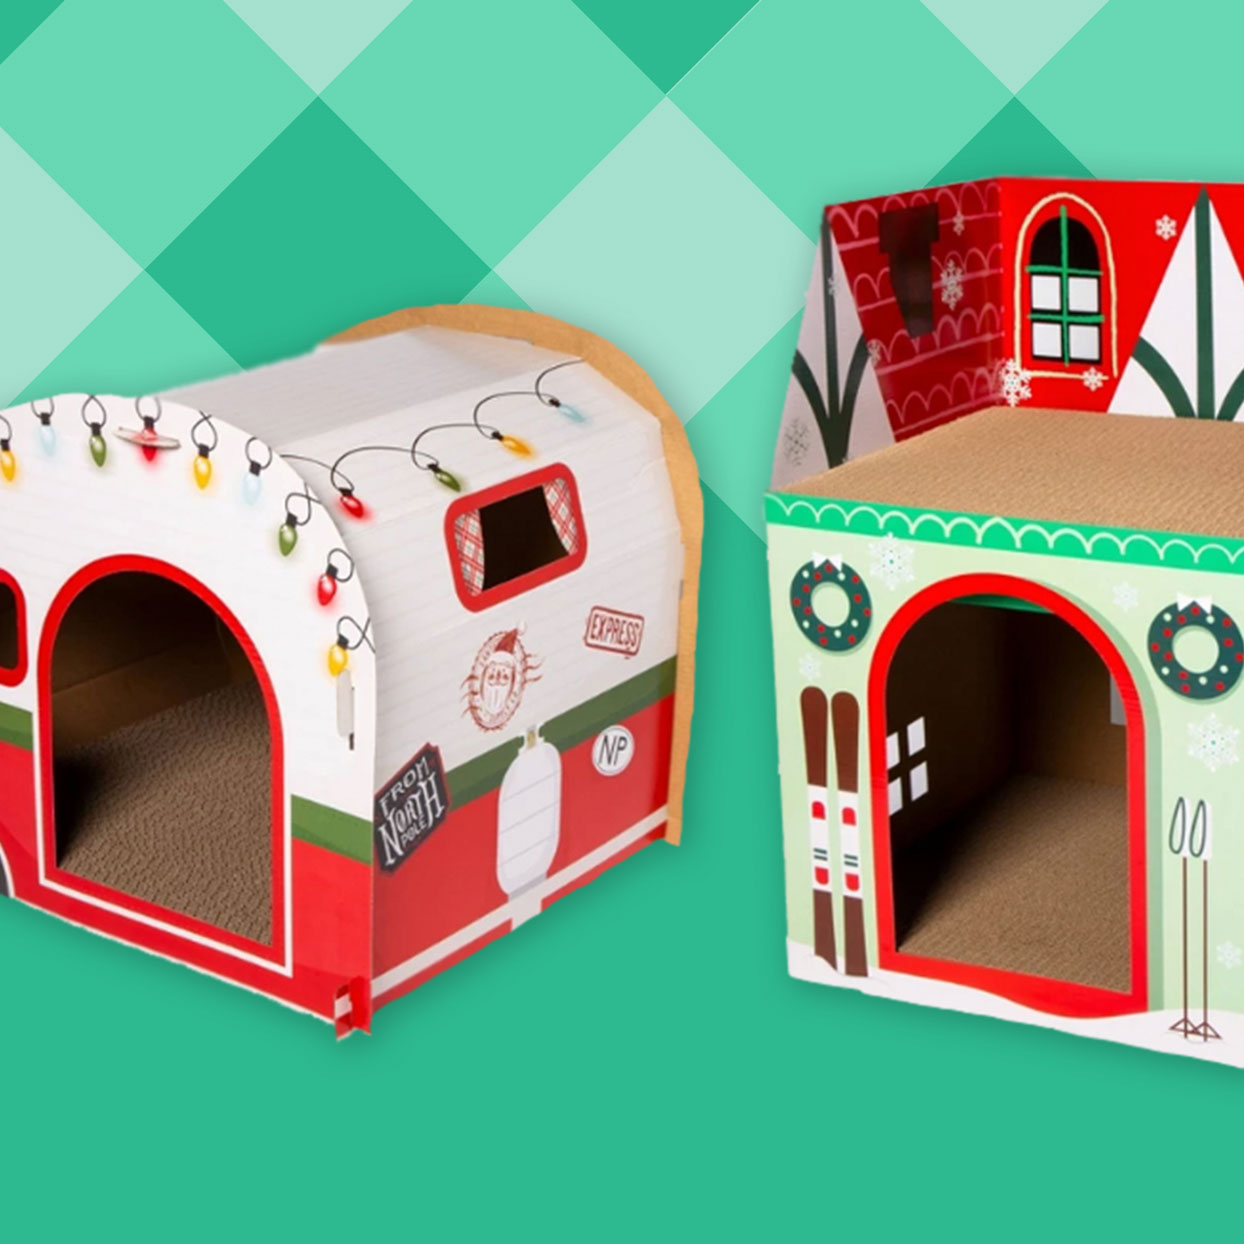 These Christmas Cat Houses Are the Purr-fect Decor for Your Holiday Display